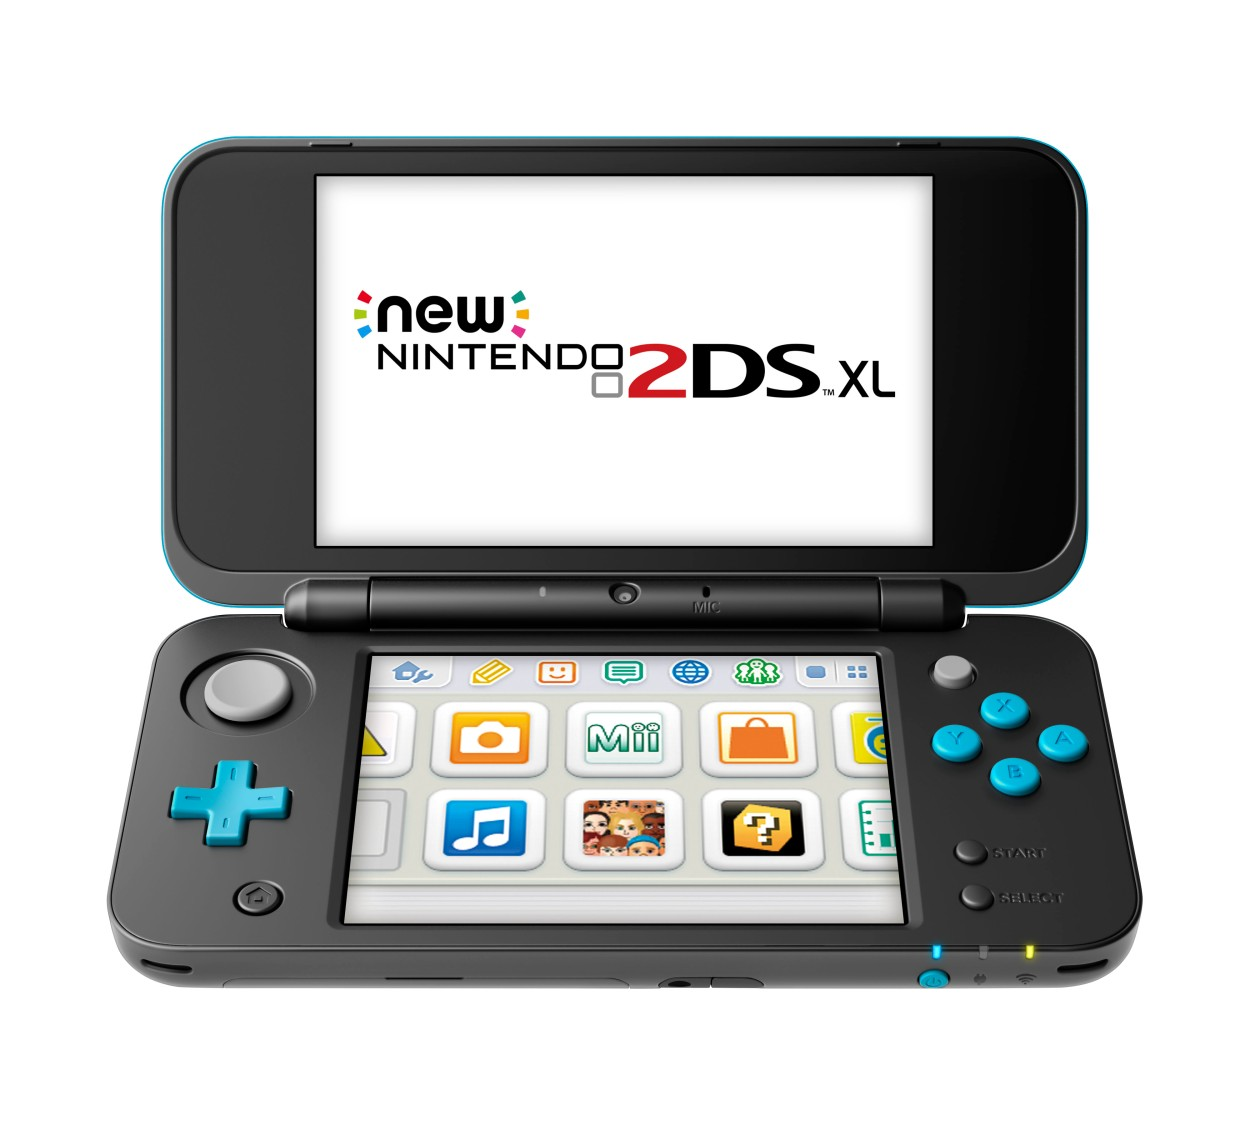 Nintendo's new 2DS XL console